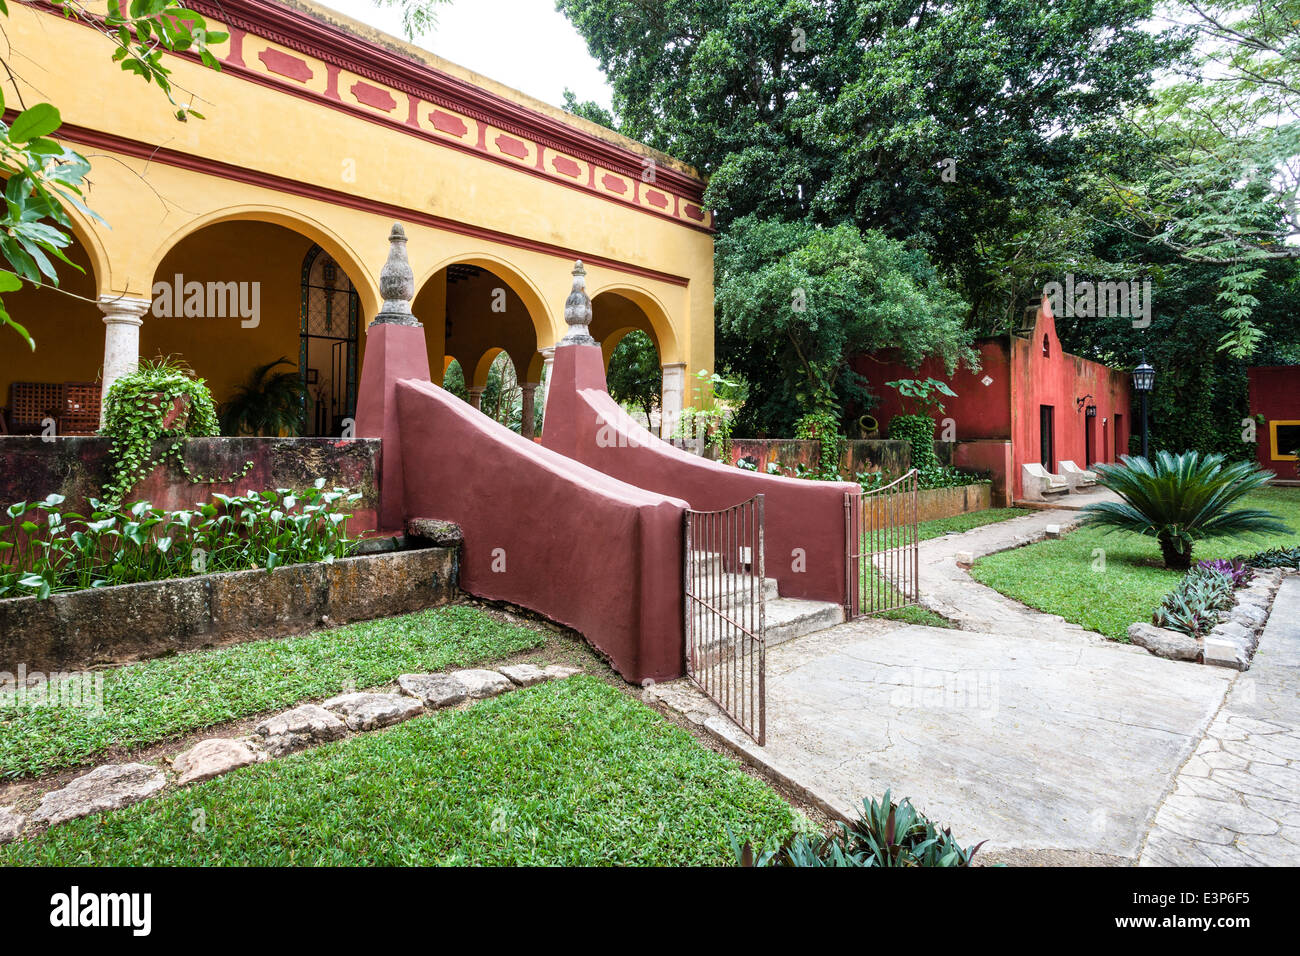 Entrance to the Hacienda Misne in Merida, Yucatan, Mexico. - Stock Image